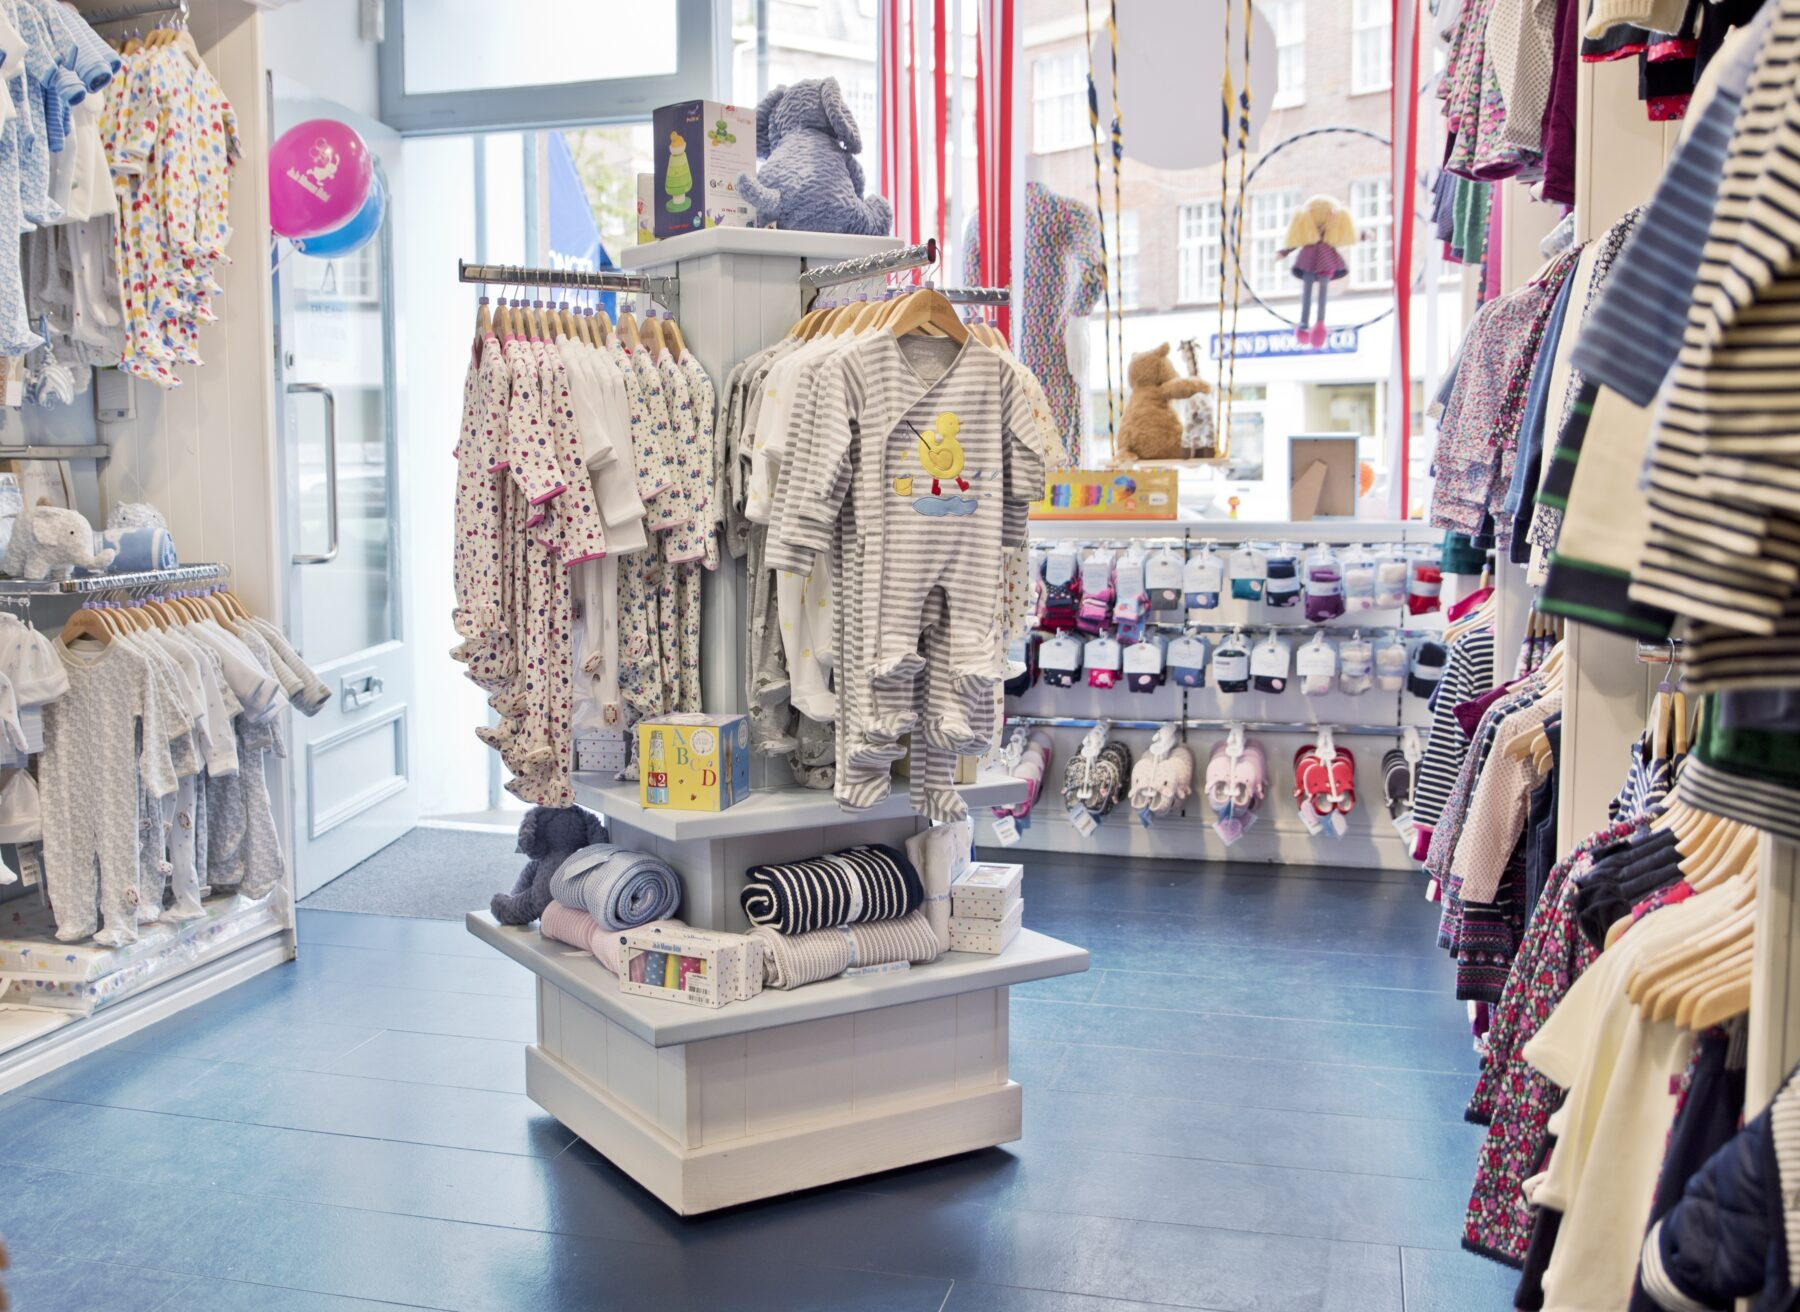 JoJo Maman Bébé to open boutique in East Grinstead just in time for Christmas